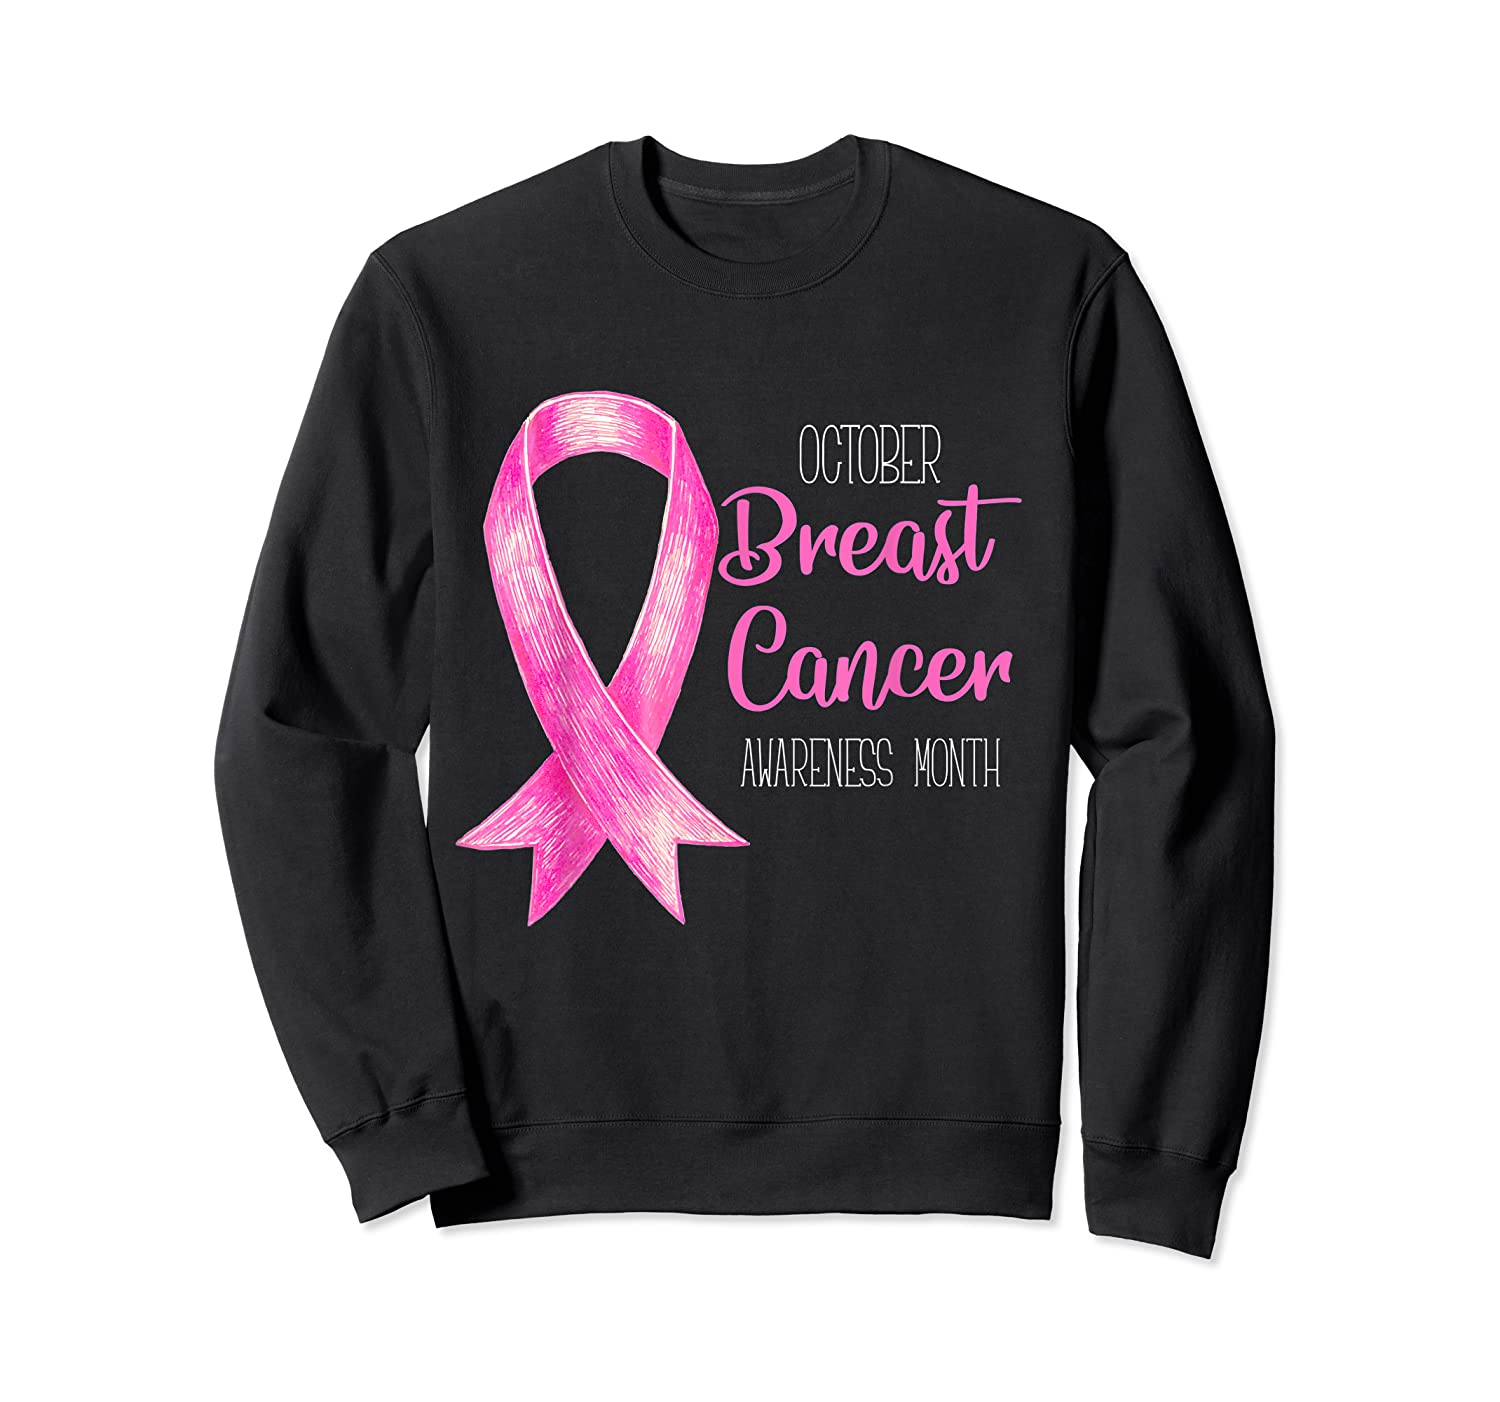 October Breast Cancer Awareness Month Shirt Show Support Crewneck Sweater